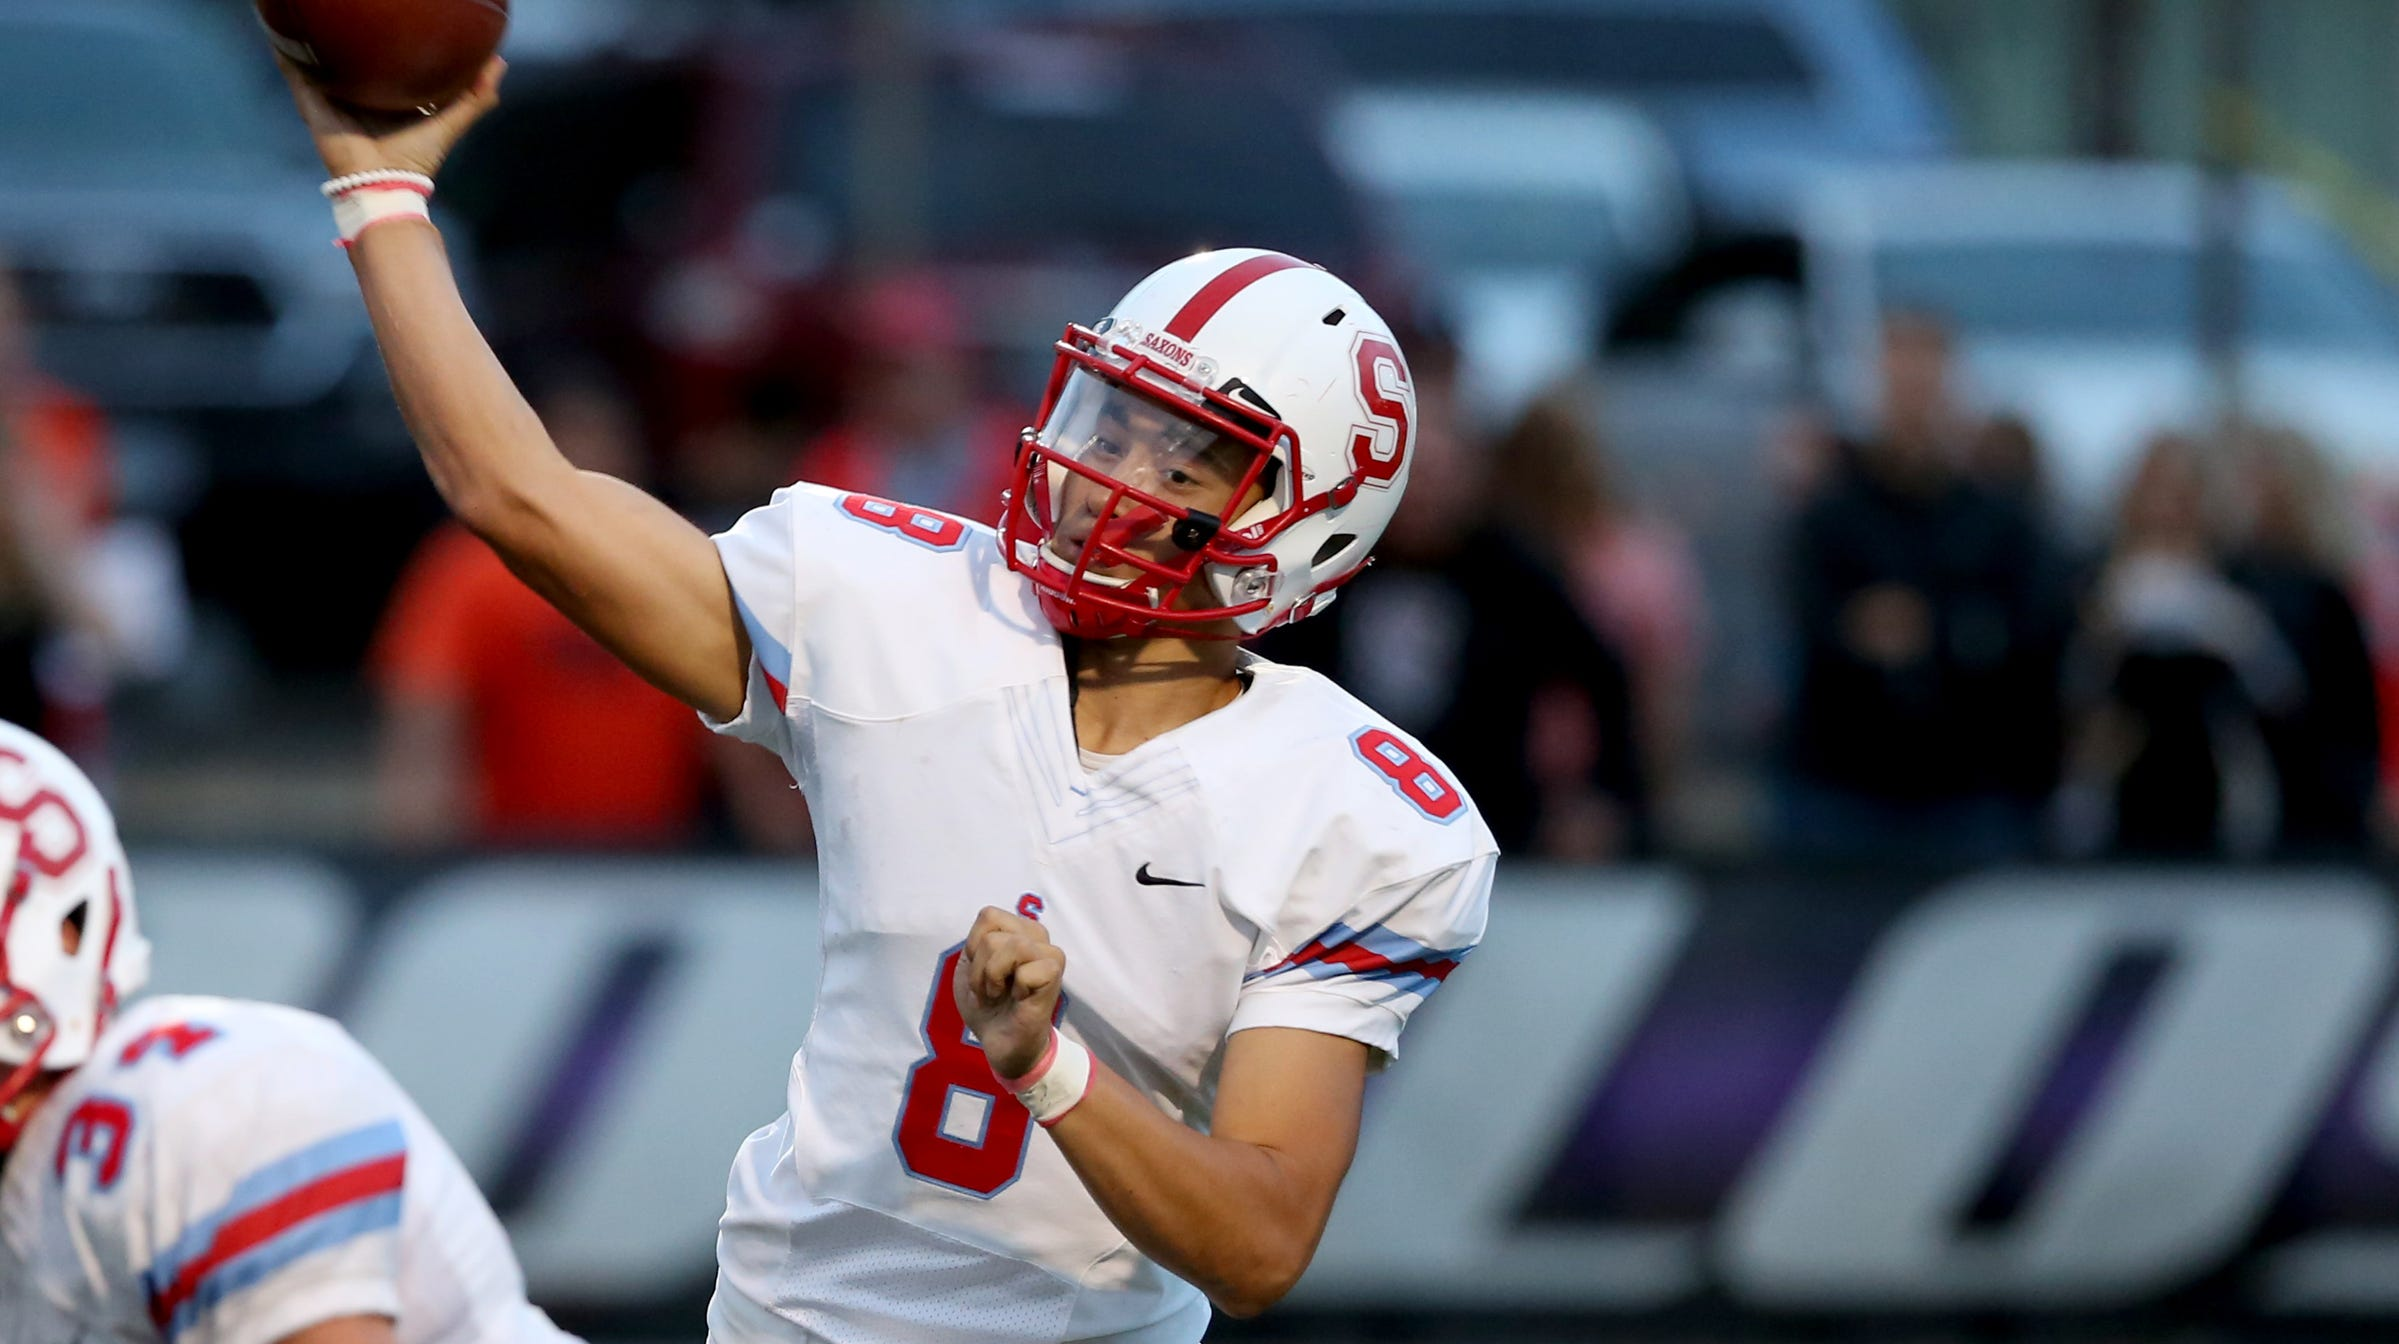 South Salem's Elijah Enomoto-Haole (8) passes the ball in the first half of the South Salem vs. Sunset football game at Sunset High School in Beaverton on Friday, Sep. 7, 2018.